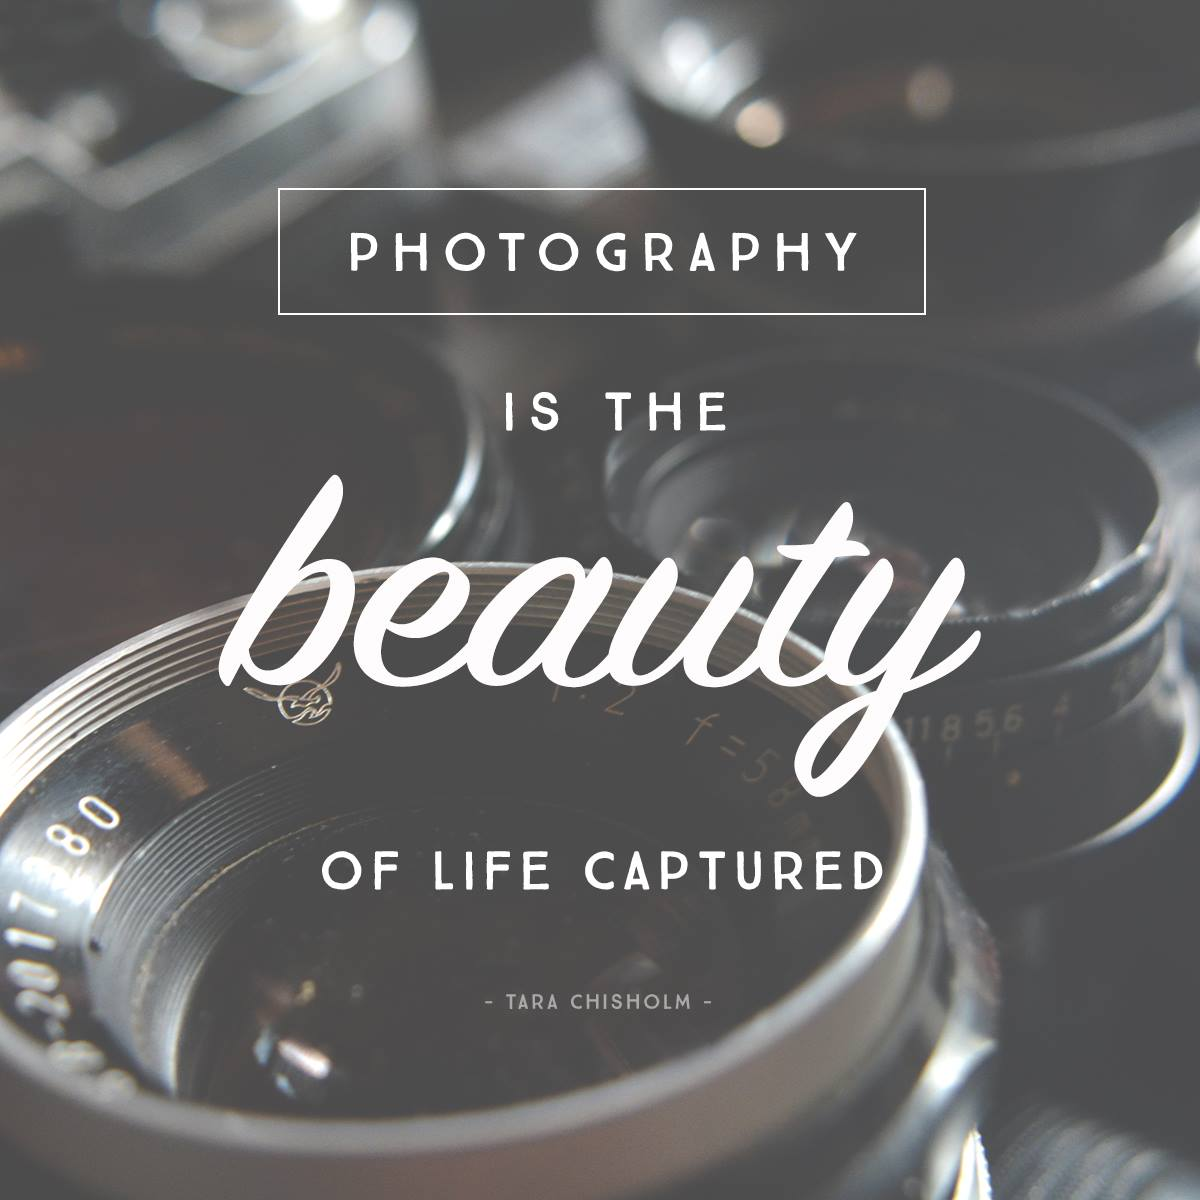 Quotes To Inspire 12 Quotes Inspire Photography Journey